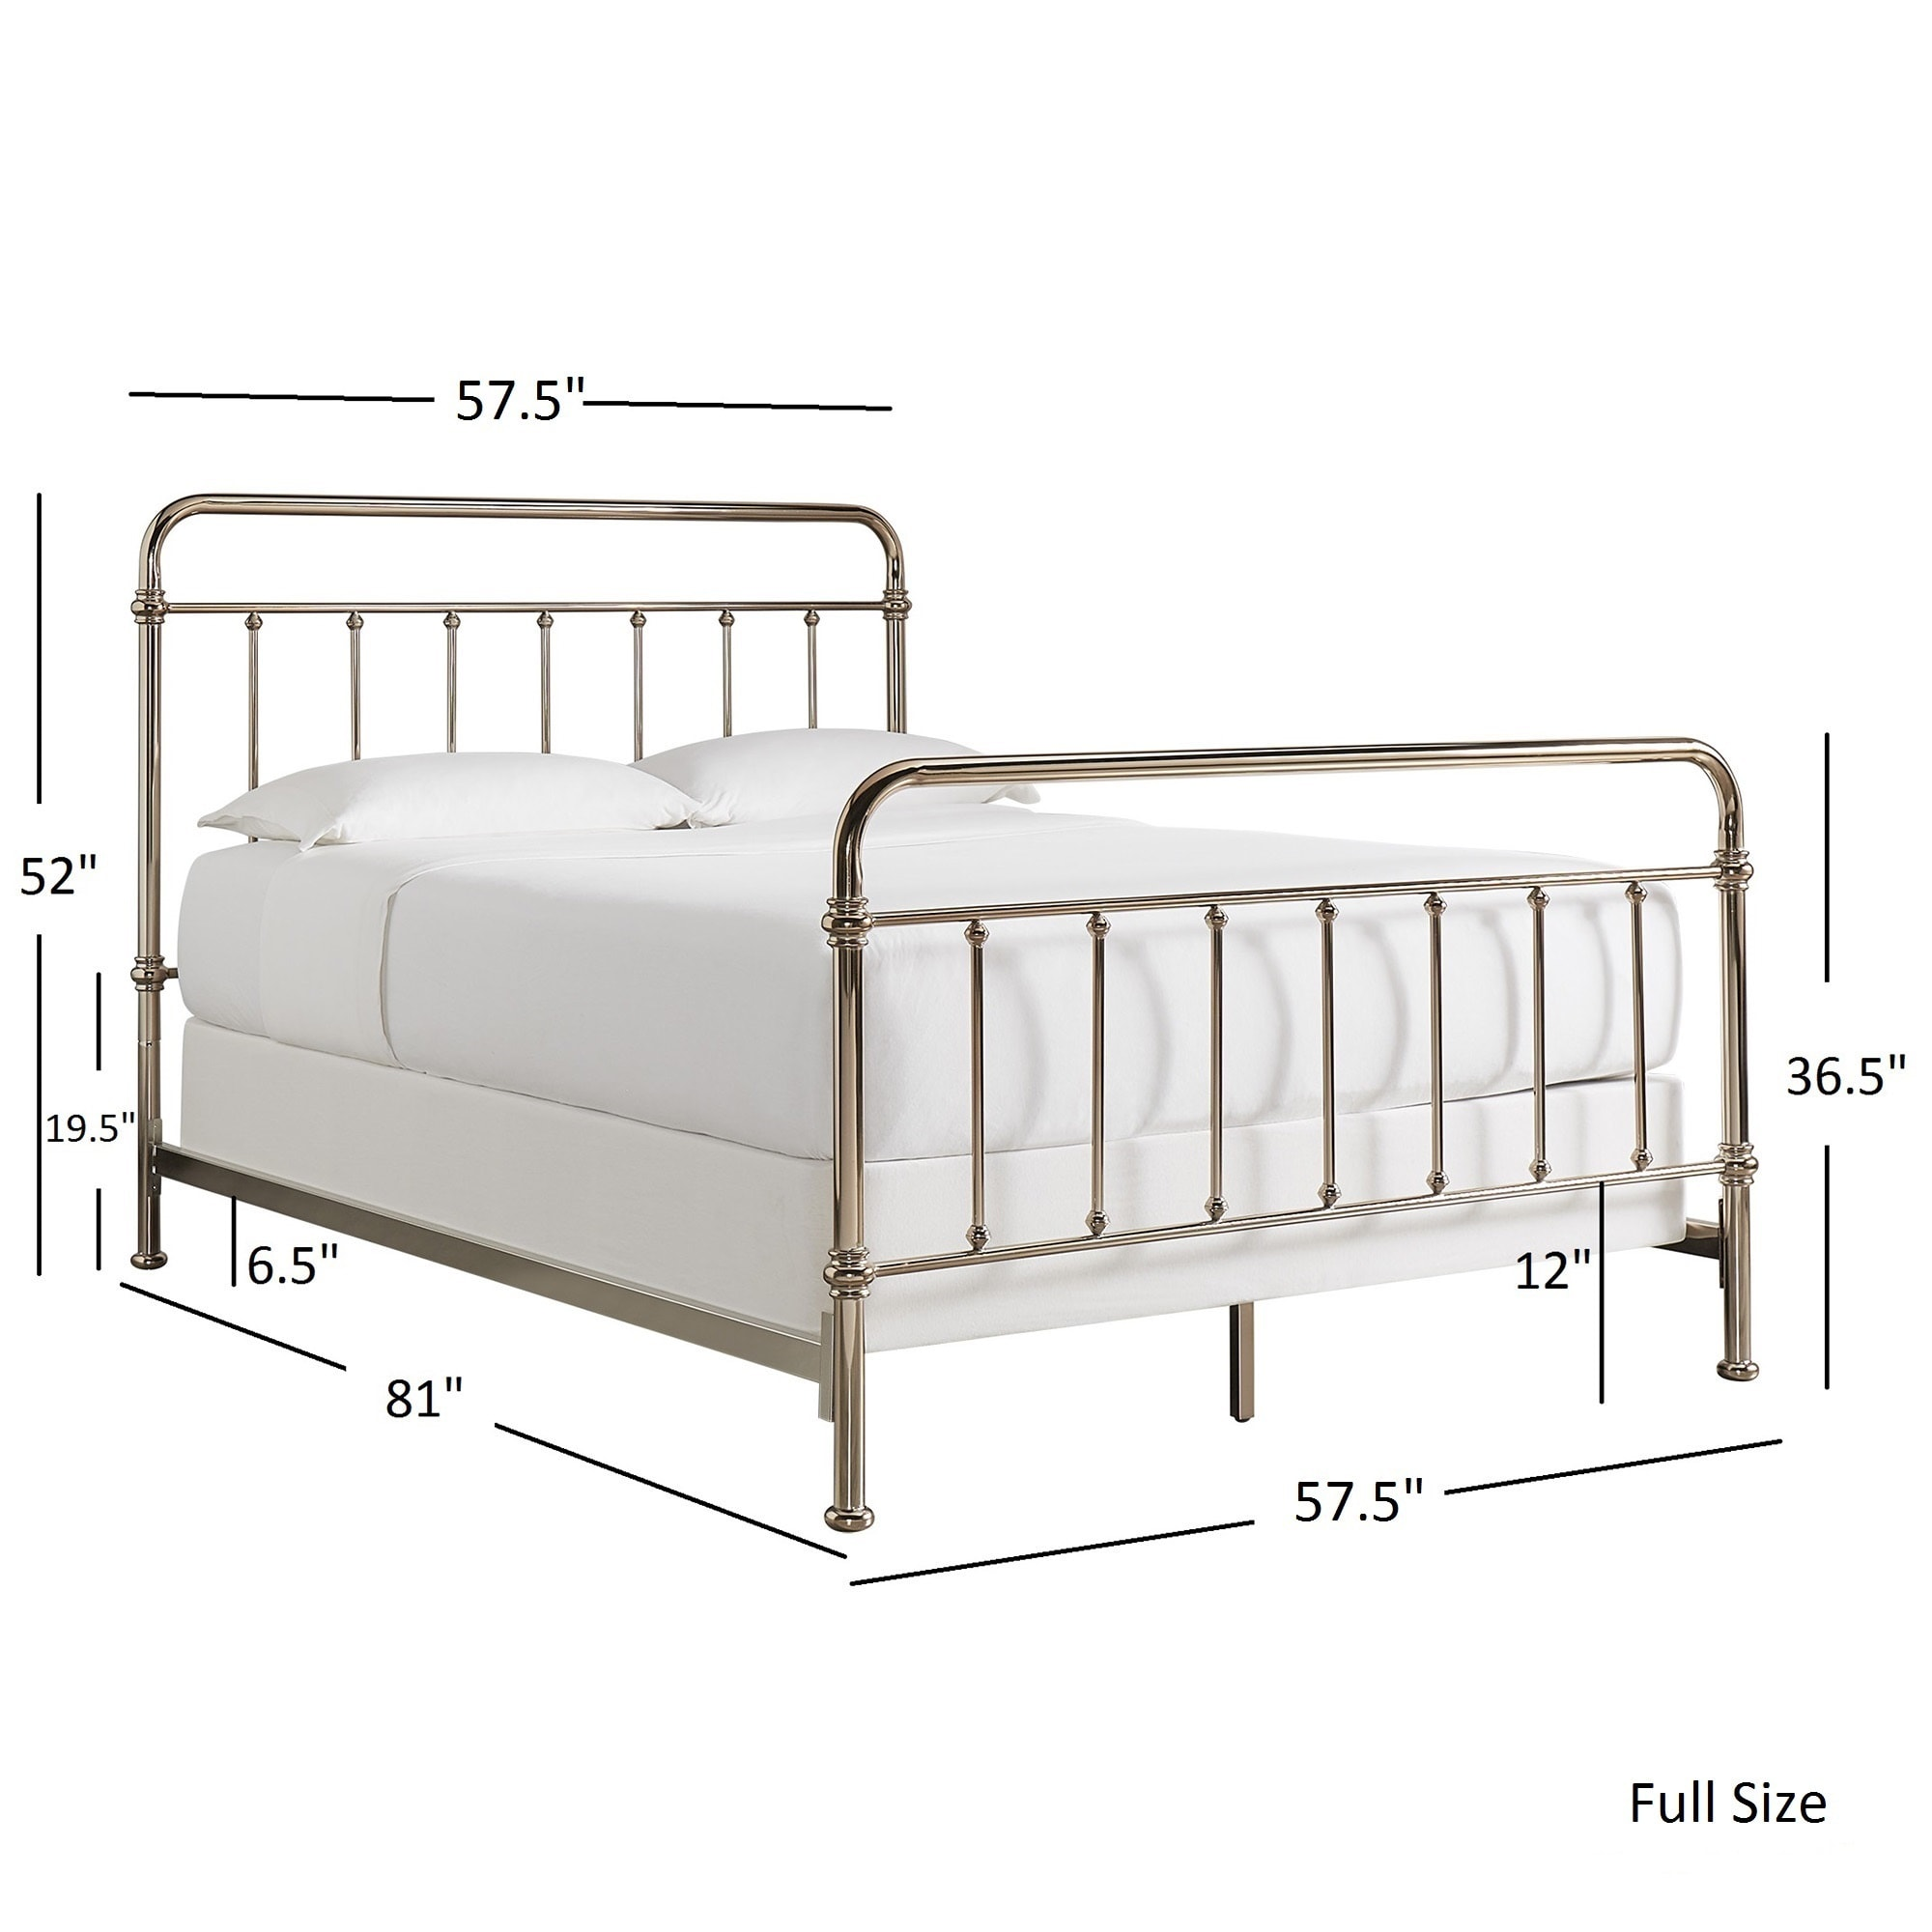 Giselle Graceful Lines Victorian Champagne Gold Metal Bed by iNSPIRE Q Bold  - Free Shipping Today - Overstock.com - 20695150